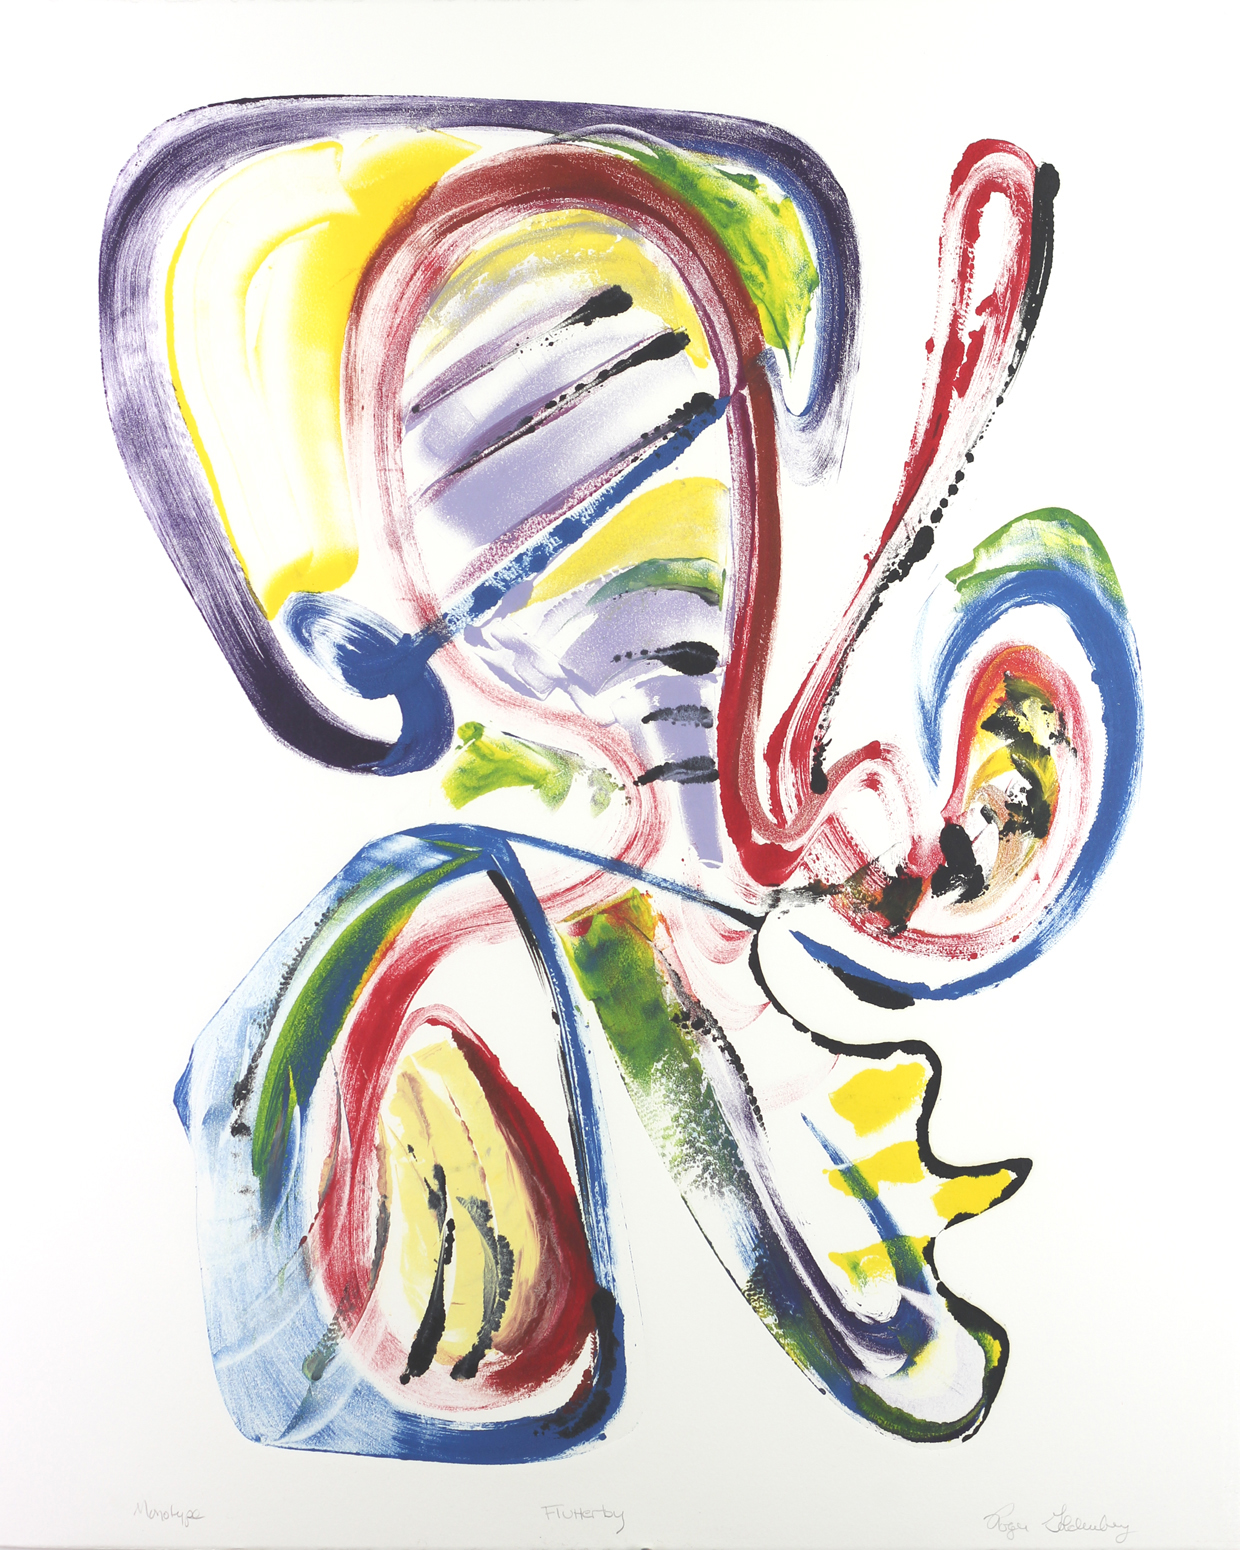 Roger Goldenberg's Visual Jazz Monotype Gallery D has prints pulled from shaped plates. Their style riffs on Goldenberg's shaped visual jazz paintings Flutterby